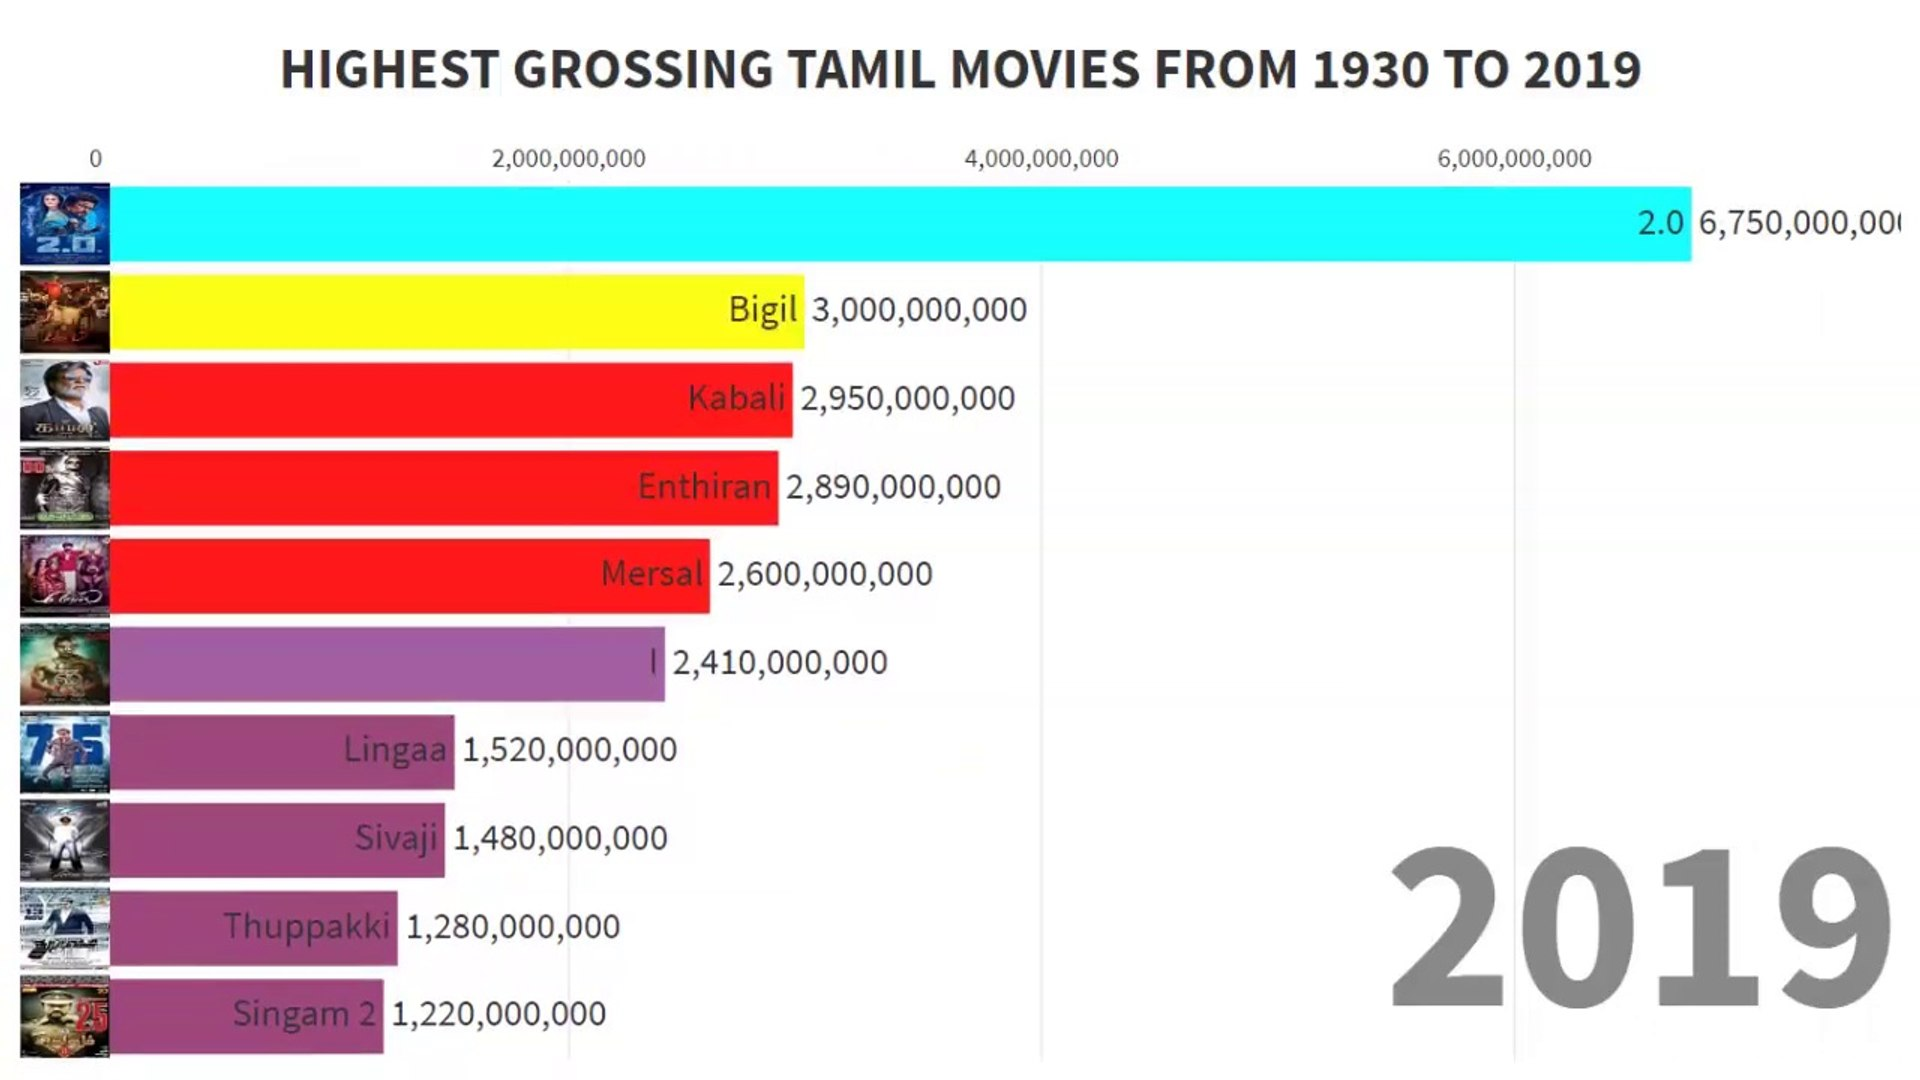 Highest grossing tamil movies 1930 to 2019